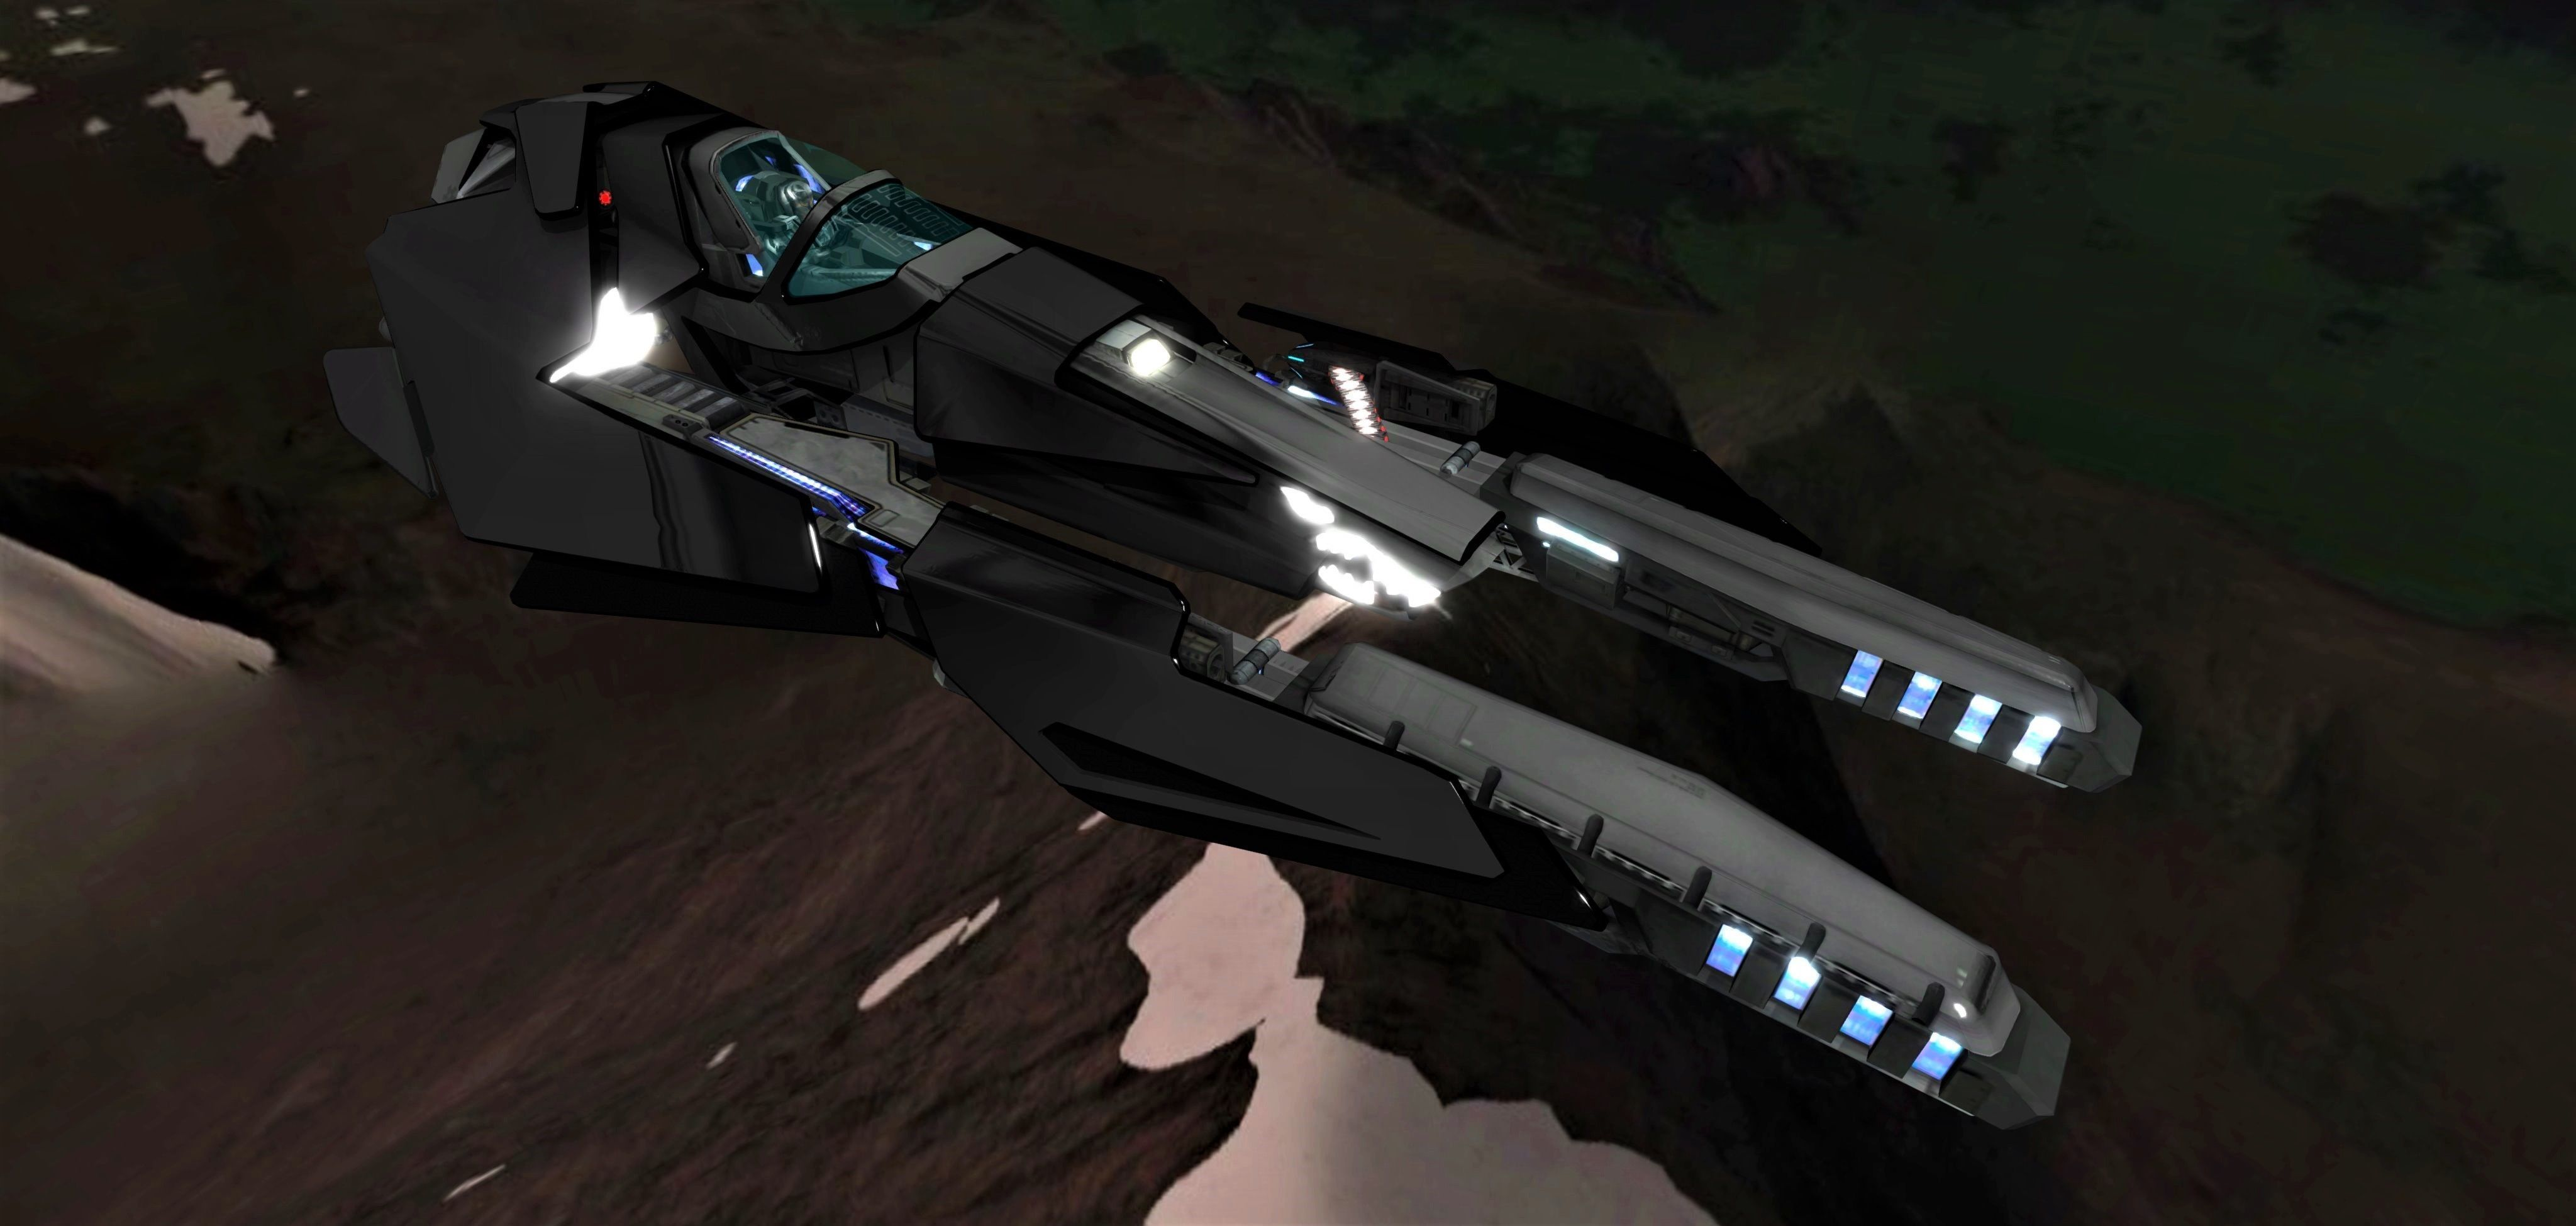 WIPE OUT - TRIAKIS F SPACE FIGHTER | 3D model